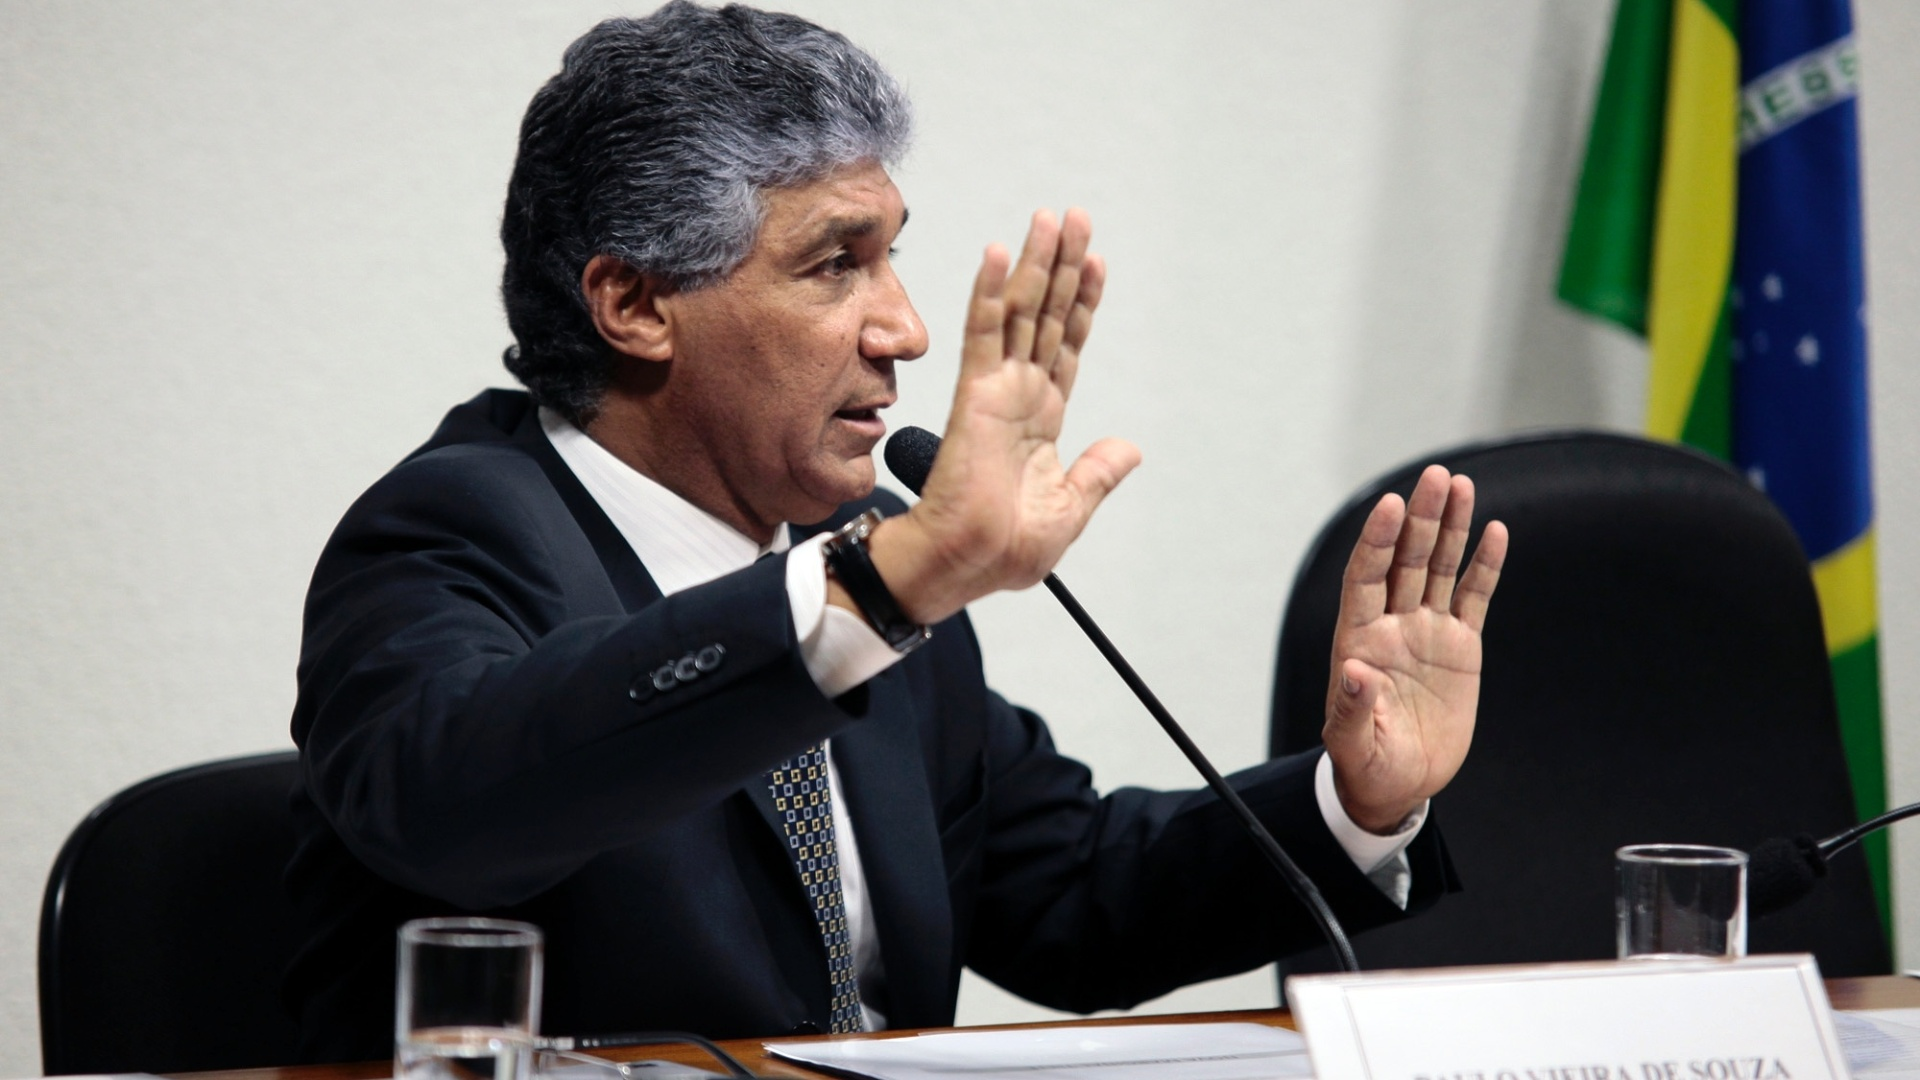 29.ago.2012 - A CPI do Cachoeira ouve o depoimento do ex-diretor da Dersa, empresa responsvel pelo desenvolvimento Rodovirio em So Paulo, Paulo Vieira de Souza.  comisso, ele declarou que 'no era o Robin, mas o Batman' das obras pblicas no Estado de So Paulo